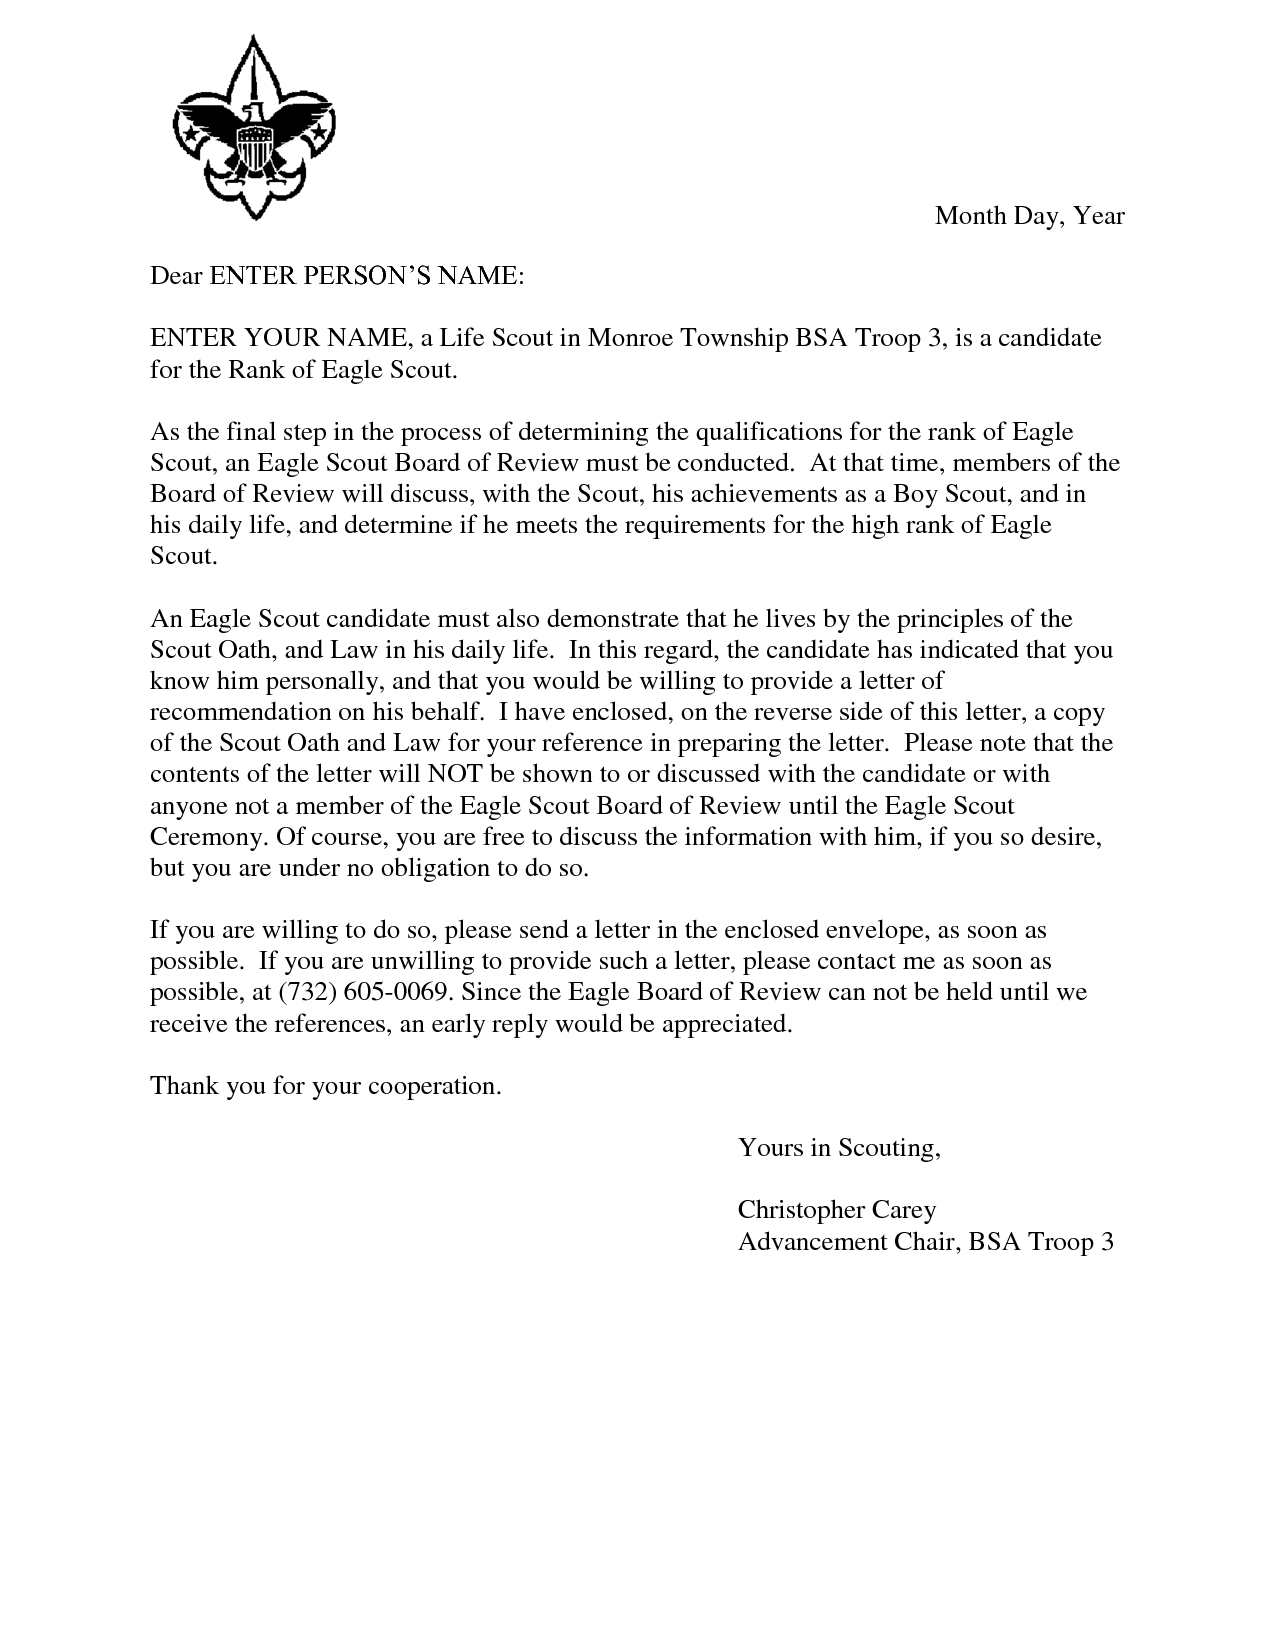 eagle scout recommendation letter template collection letter